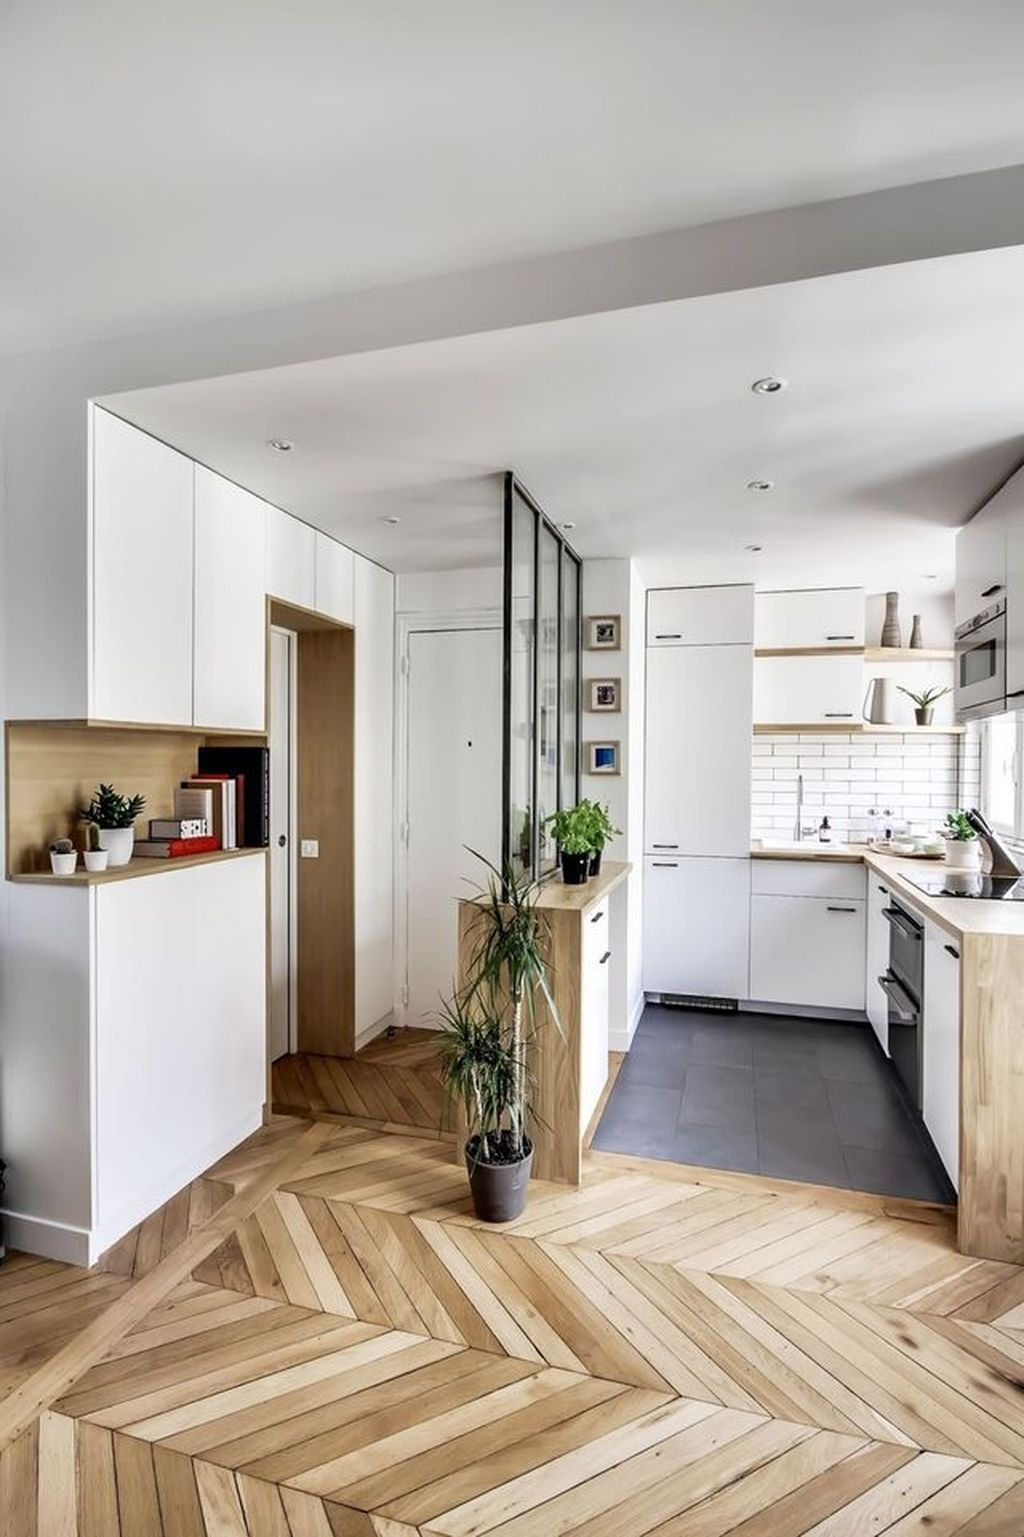 99 Totally Cool Tiny Apartment Loft Space Ideas